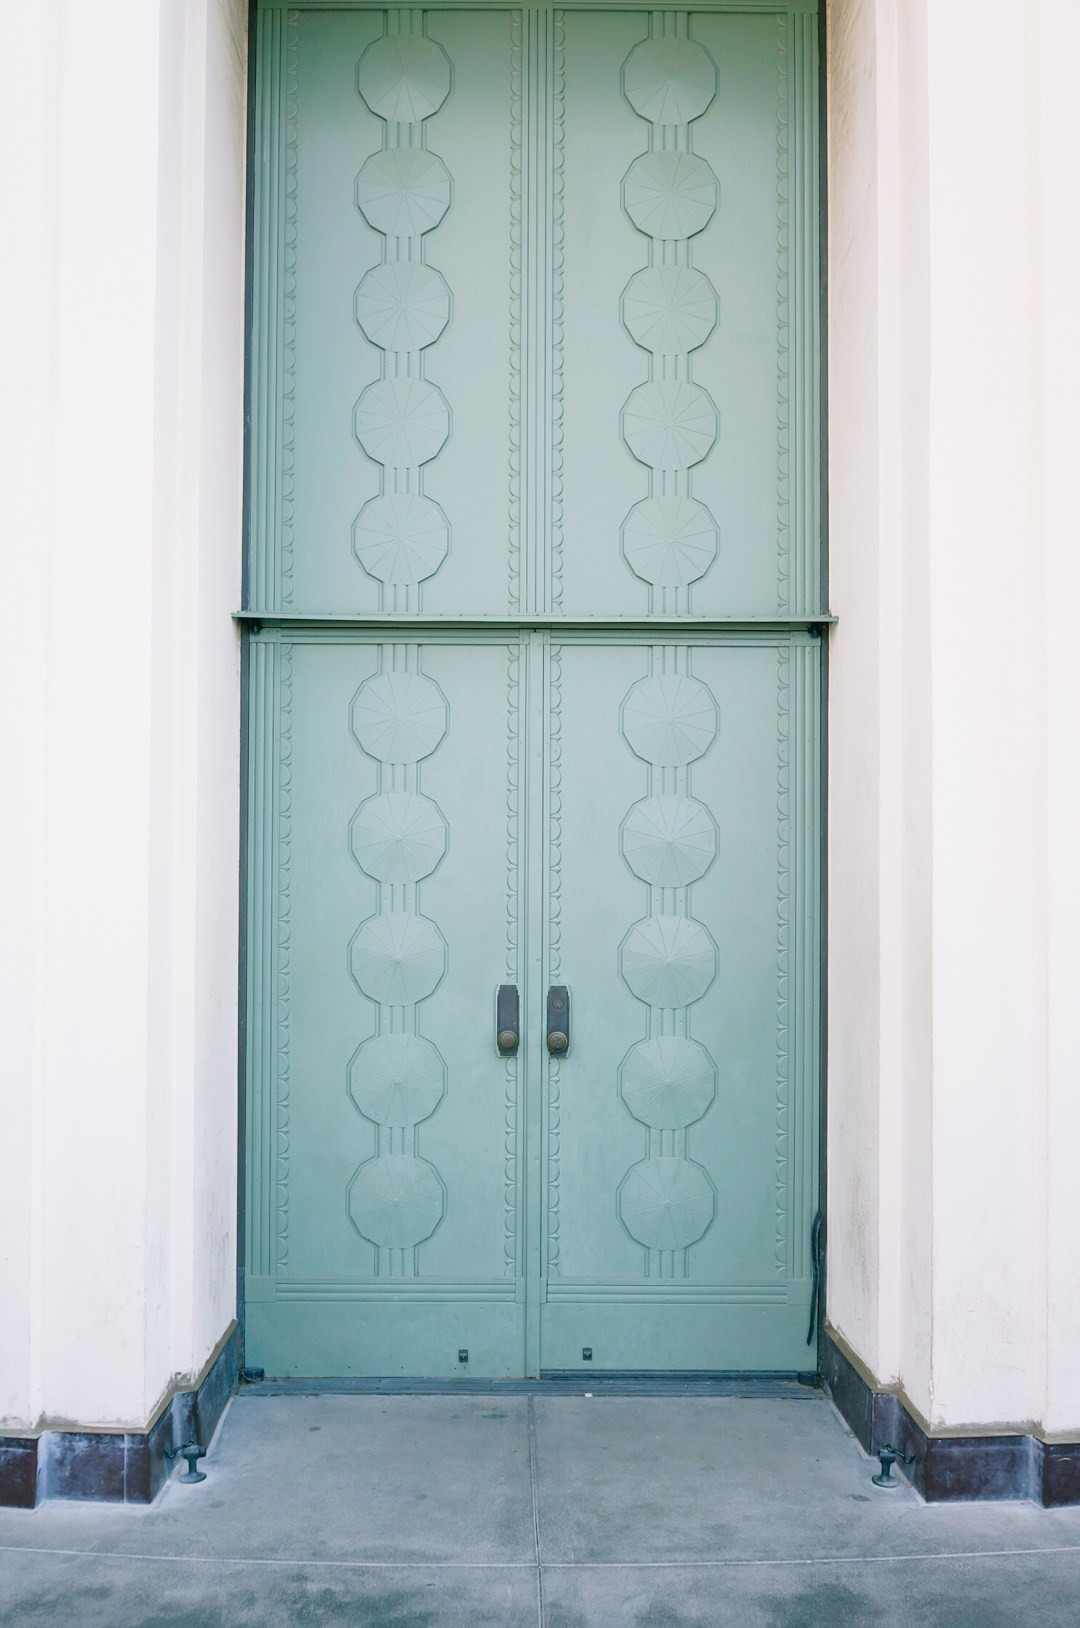 seafoam green doors with art deco details at griffith observatory